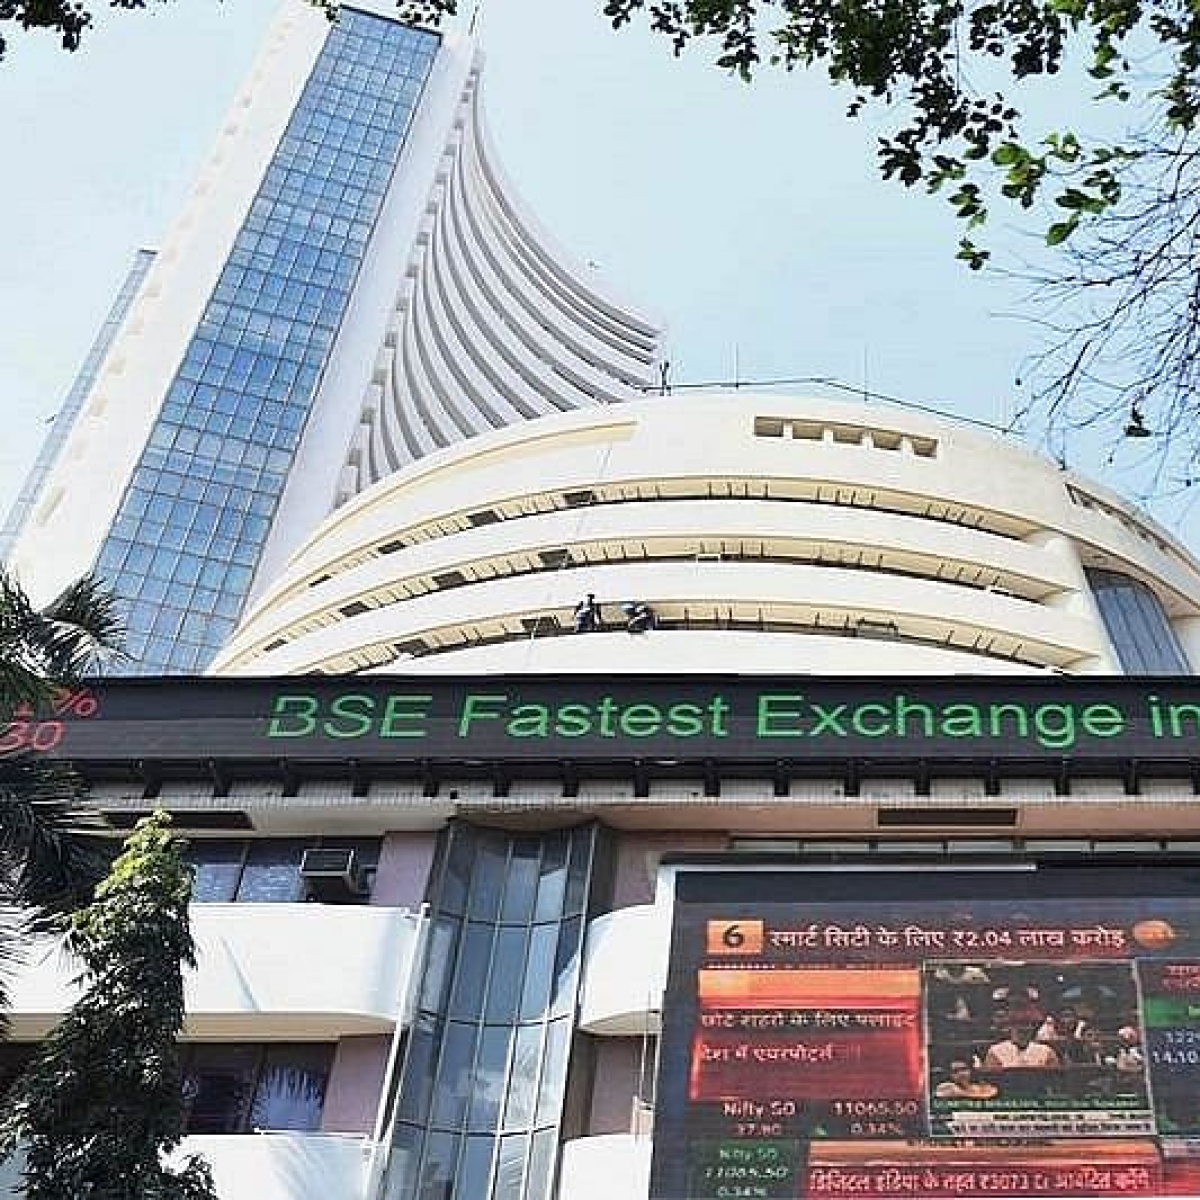 Trends on SGX Nifty indicate gap-down opening; Asian markets weak